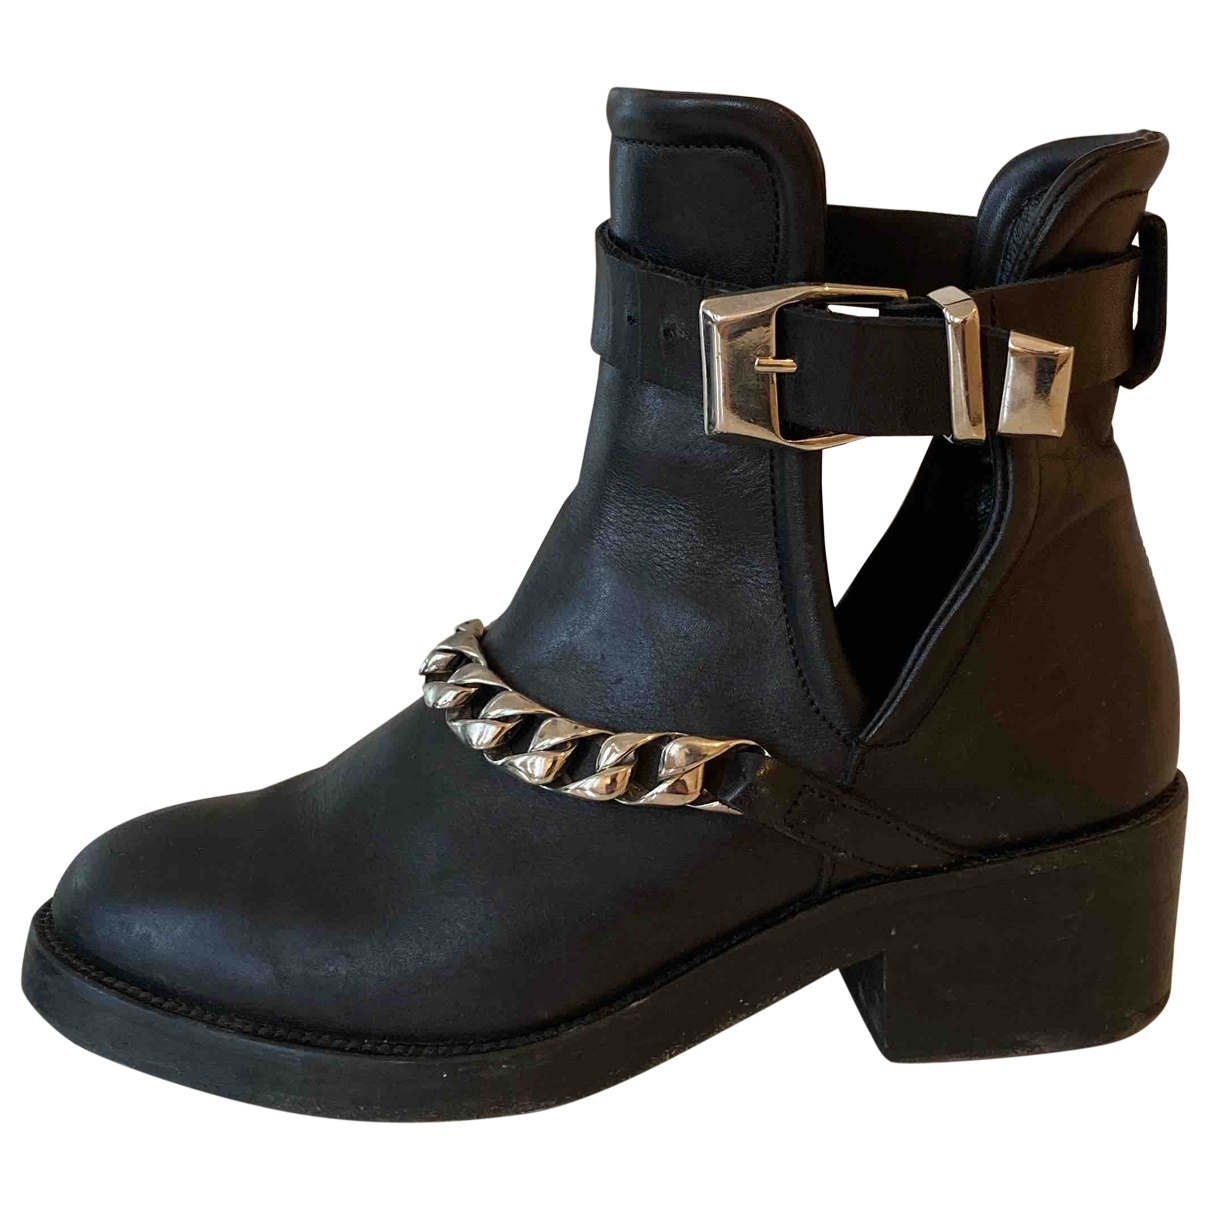 Sandro \N Black Leather Ankle boots for Women 37 EU